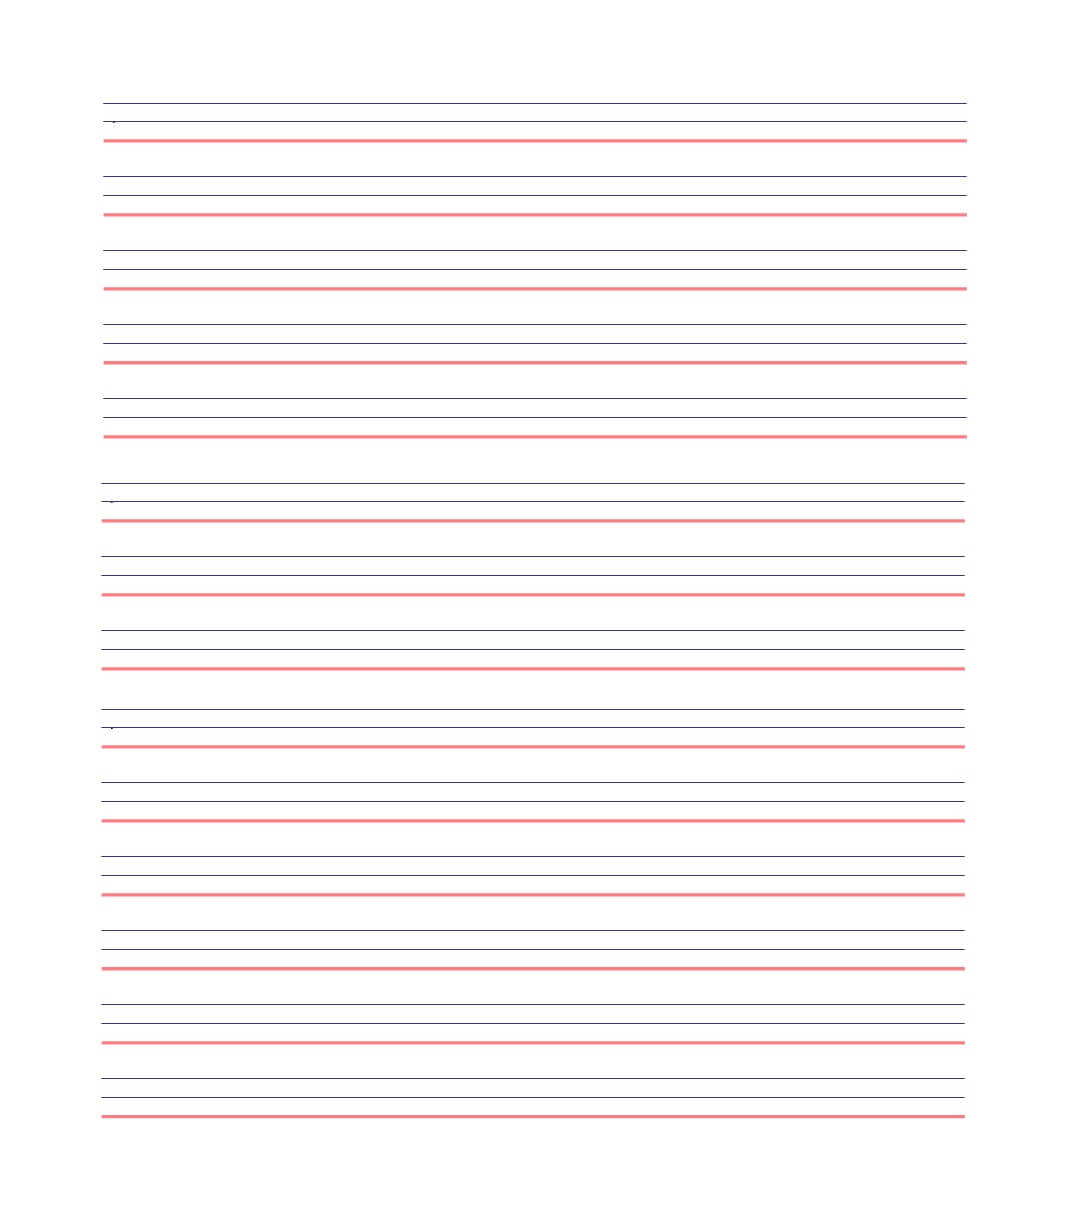 32 Printable Lined Paper Templates ᐅ Template Lab Throughout Notebook Paper Template For Word 2010